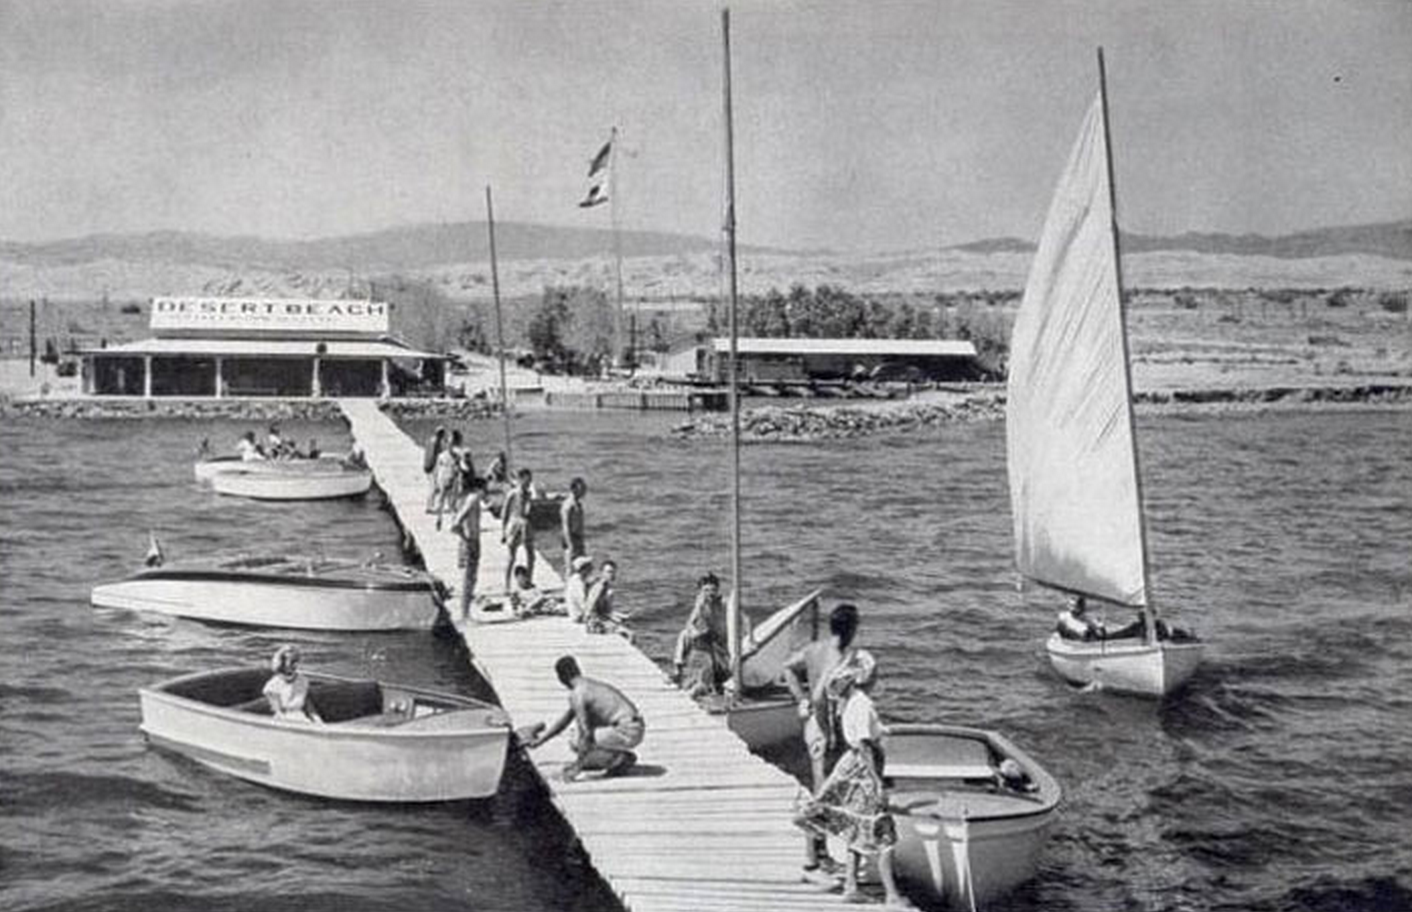 Skippers sail trim yachts, not subs, 40 fathoms below the Pacific on California's Salton Sea. (Photo courtesy of the Salton Sea History Museum)